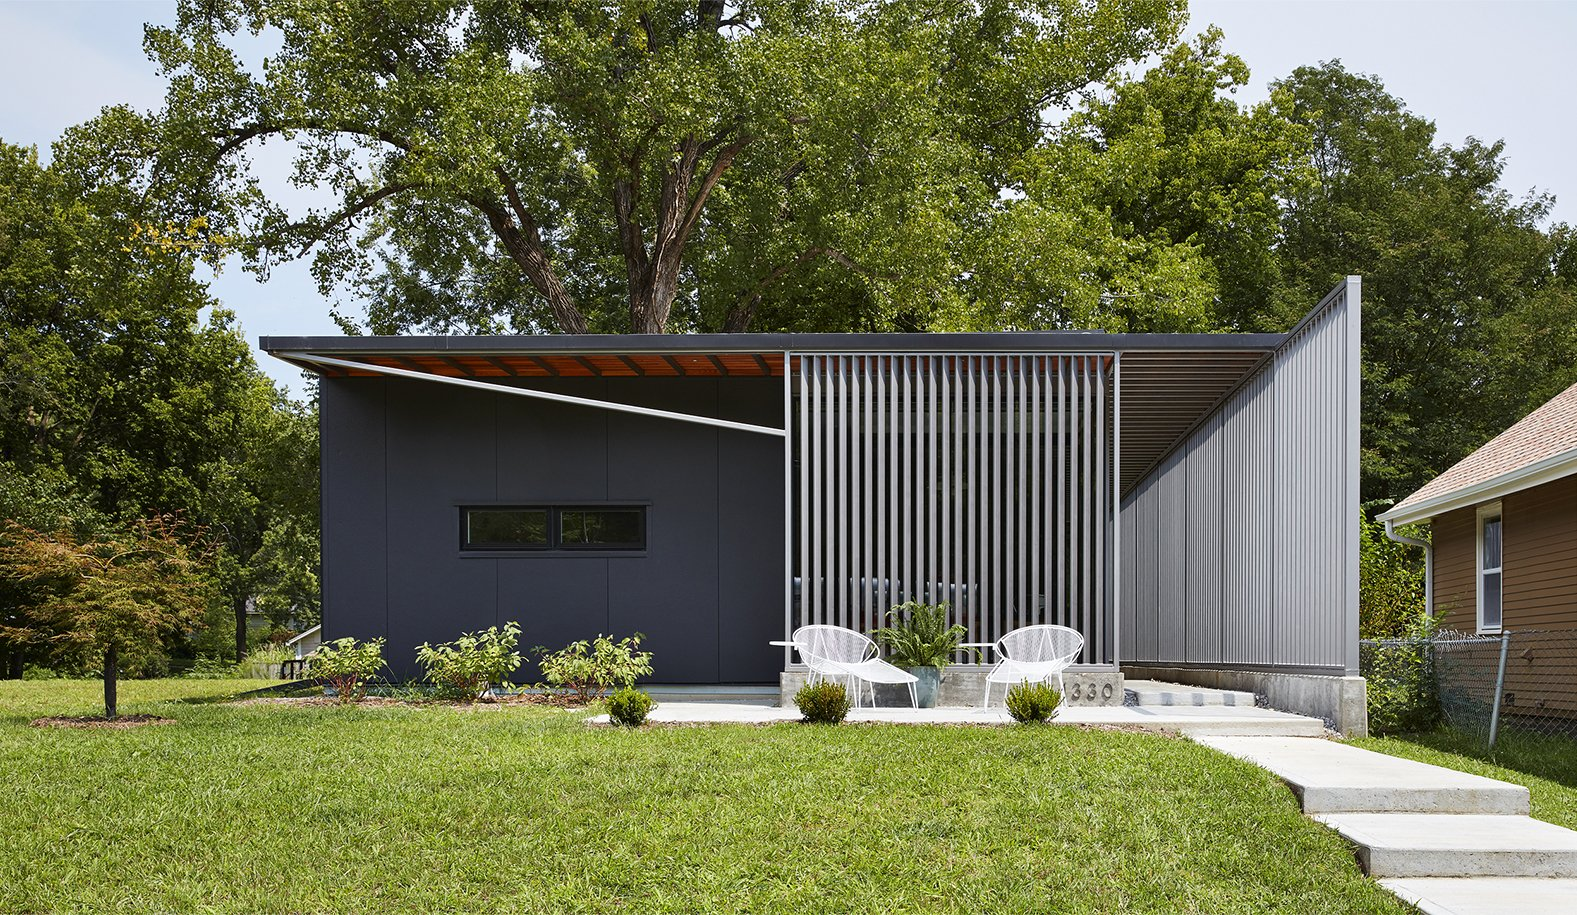 Exterior, Flat RoofLine, House Building Type, and Metal Siding Material Using insulted metal panels that were rejected from the construction of a tennis center nearby, this sustainable home in Kansas by Studio 804 was inspired by the prefab Lustron houses that were developed in the United States after World War II.  Photos from 9 Best Homes With Interesting Screened Facades